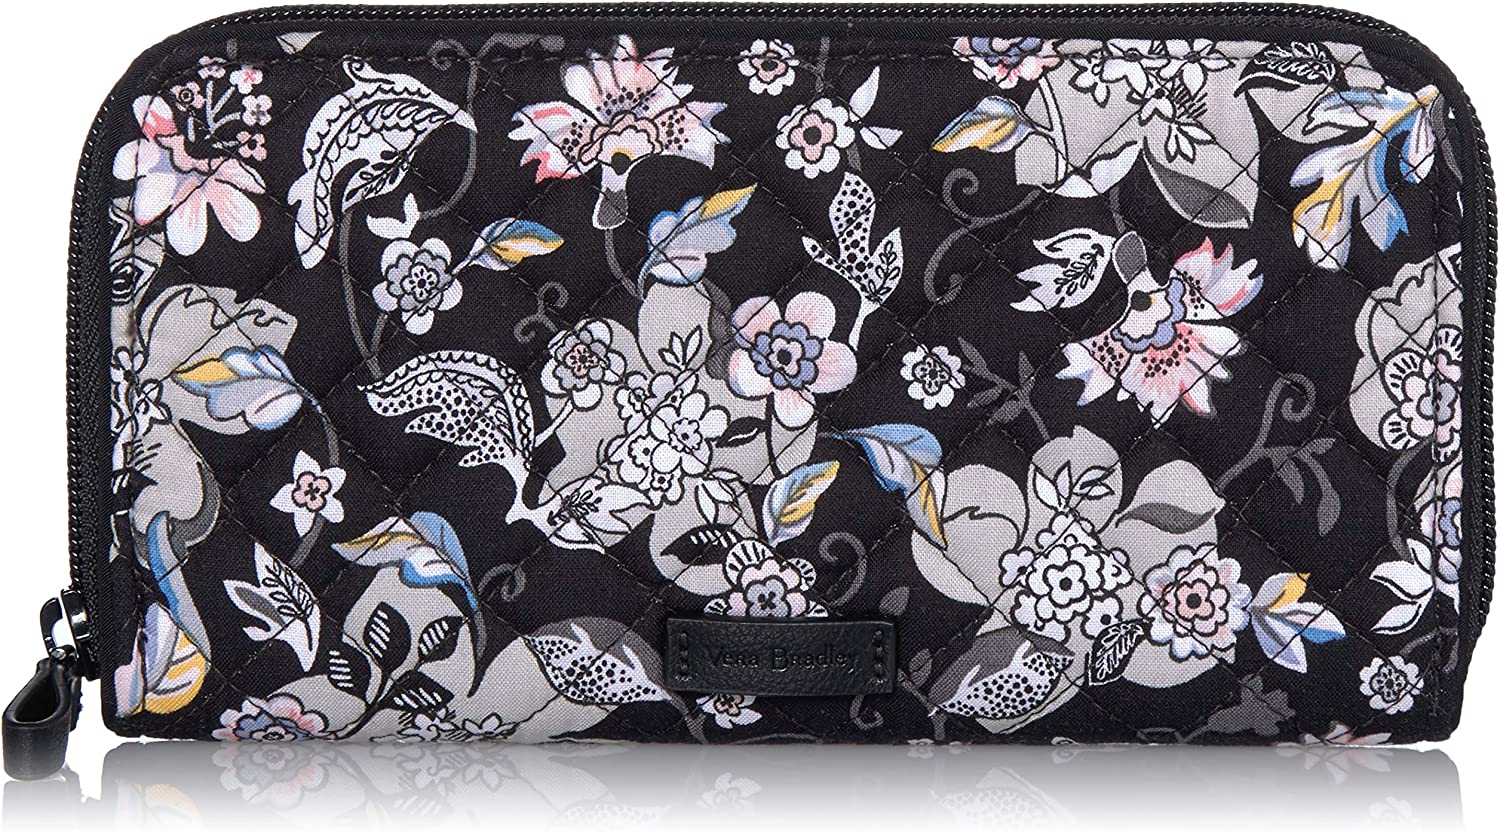 Vera Bradley Women's Signature Cotton Georgia Wallet with RFID Protection